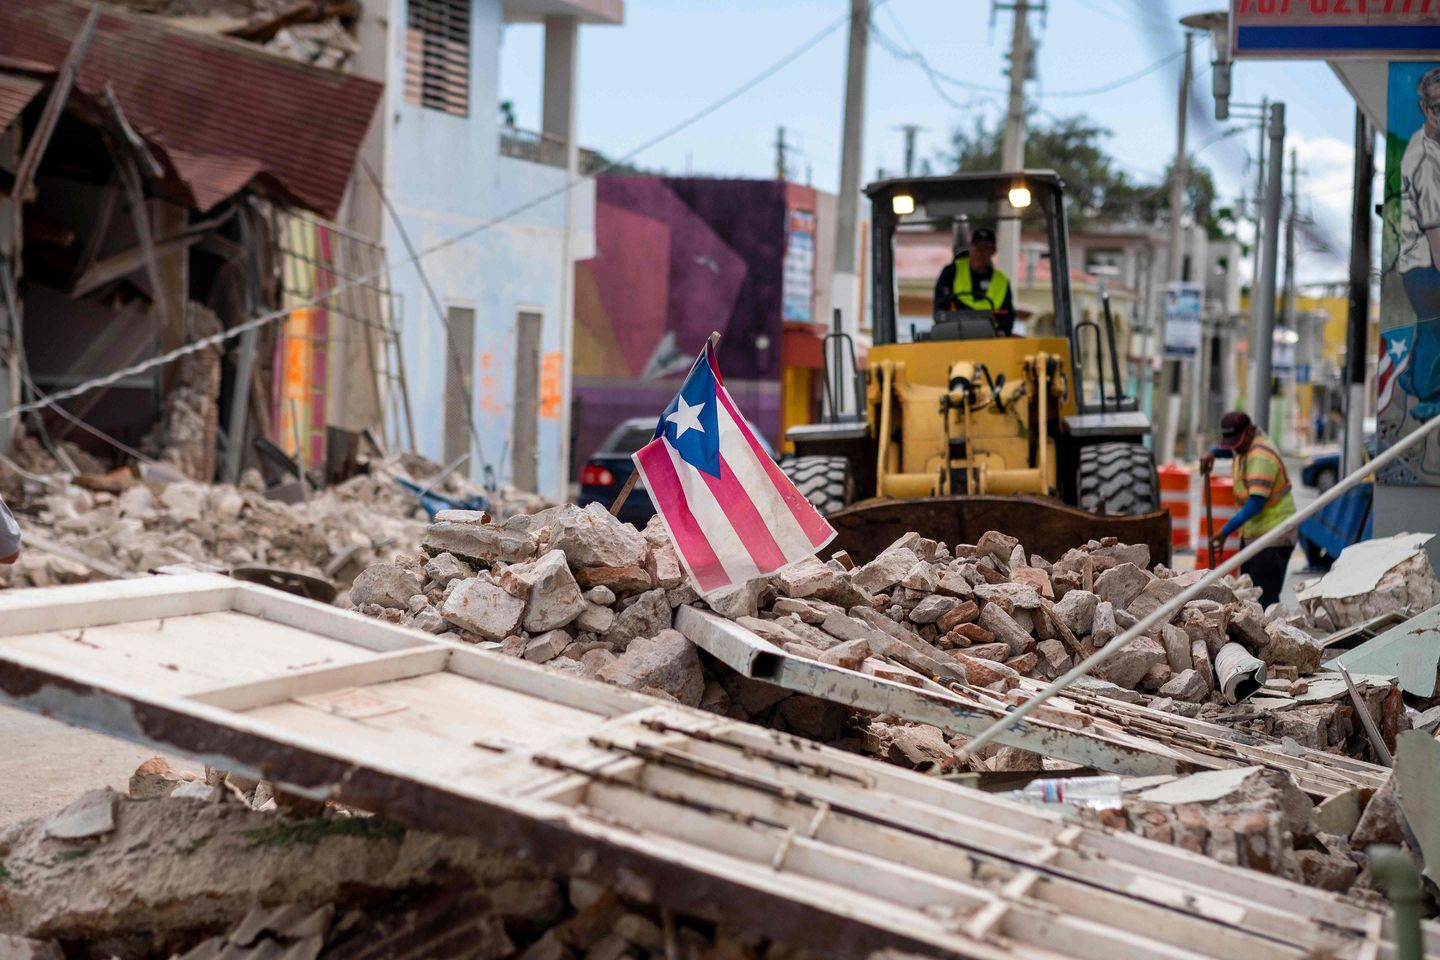 Puerto Rico Earthquake Residents Flee Damaged Structures Fear More Temblors In 2020 Us Islands Puerto Rico Earthquake Relief